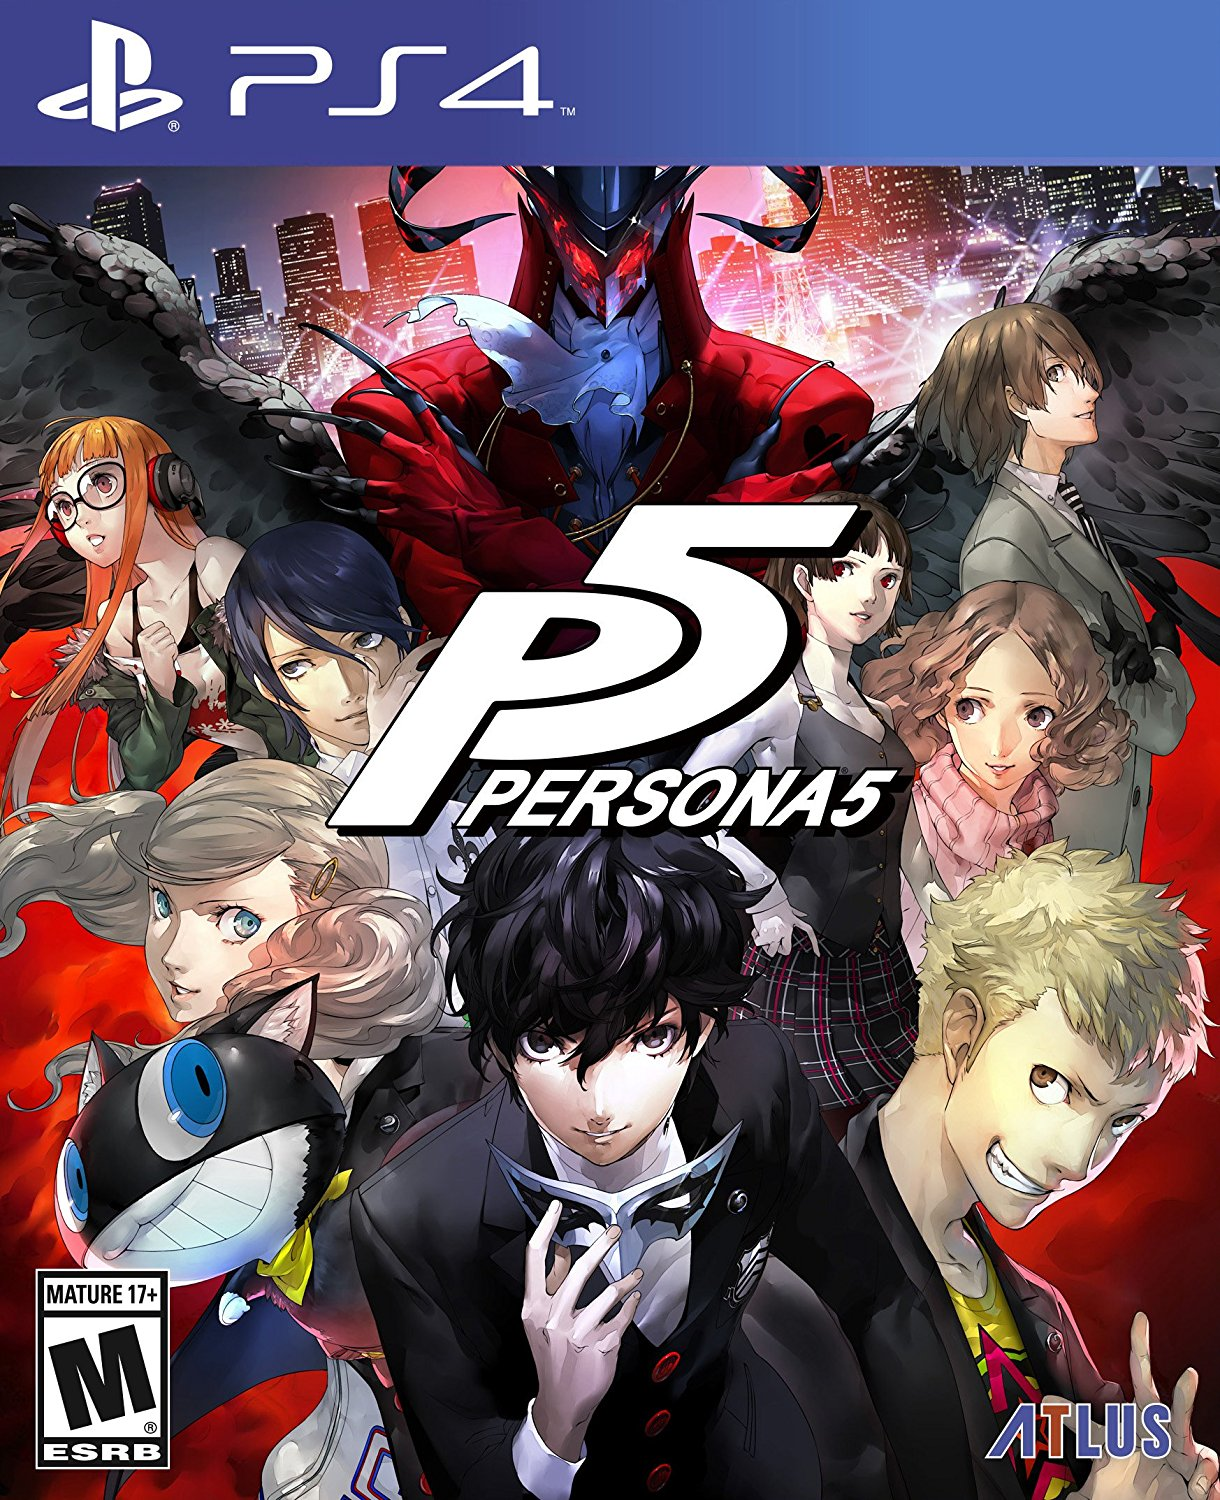 PS4 Persona 5 (PlayStation 4)